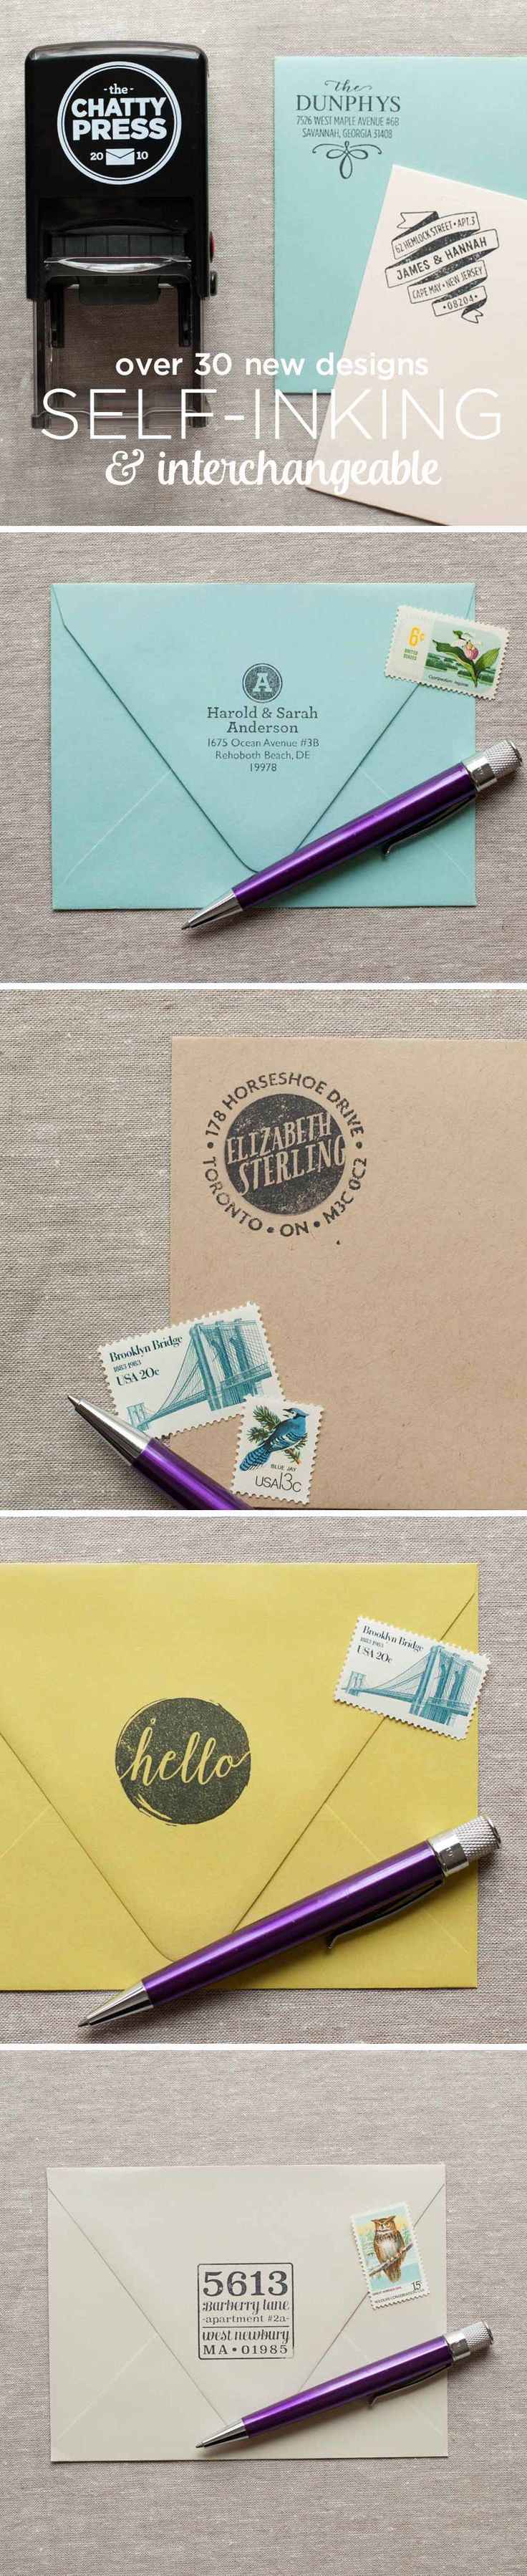 Self Inking interchangeable Address Stamps from the Chatty Press! Mix and match your favorite designs, they're easy to swap out when it's time to move!